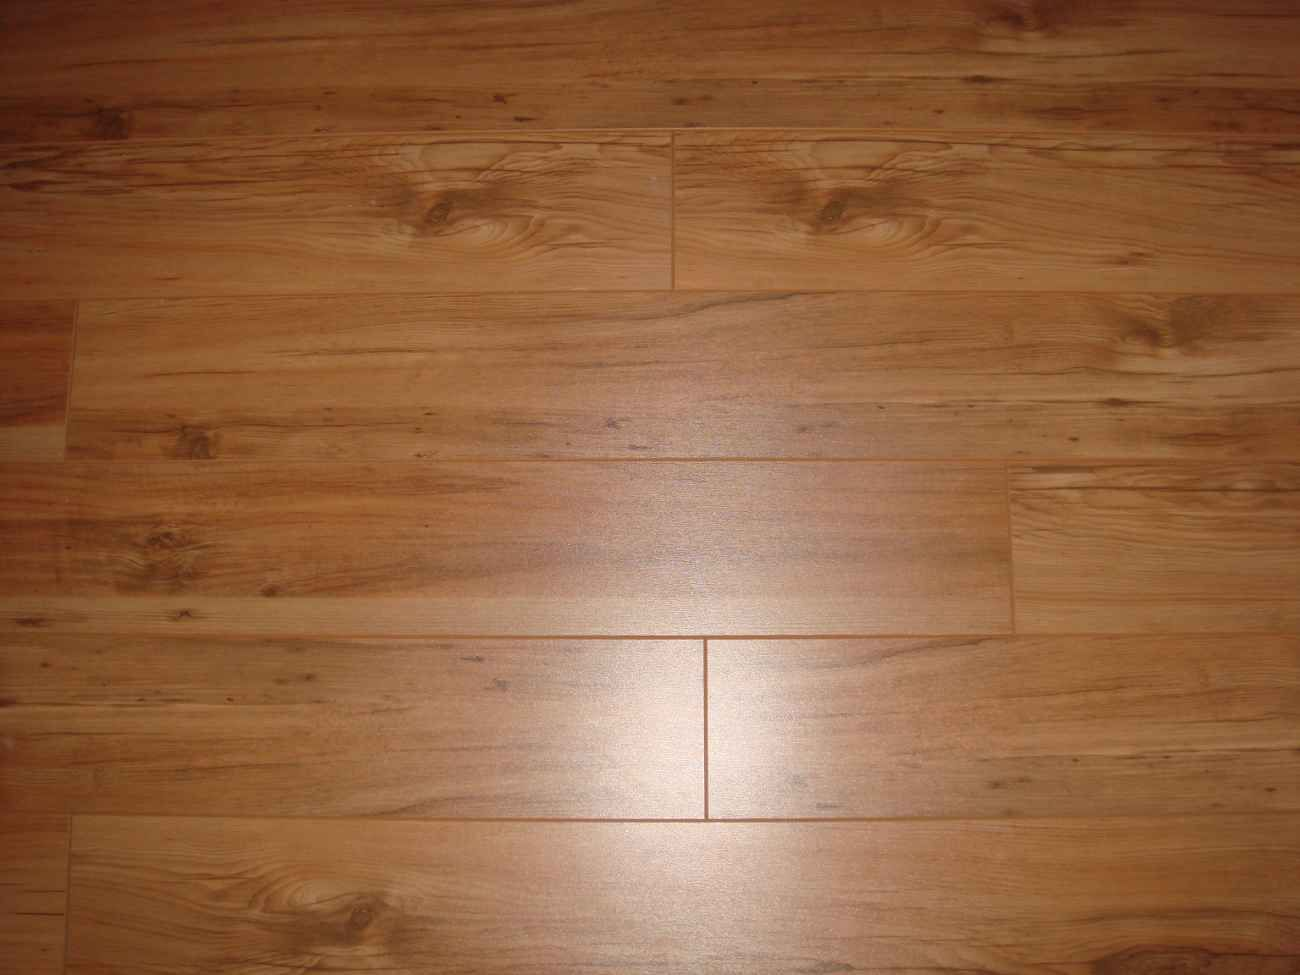 house tile look pictured that flooring wood designed best for floor is vs floors your like which natural tiles